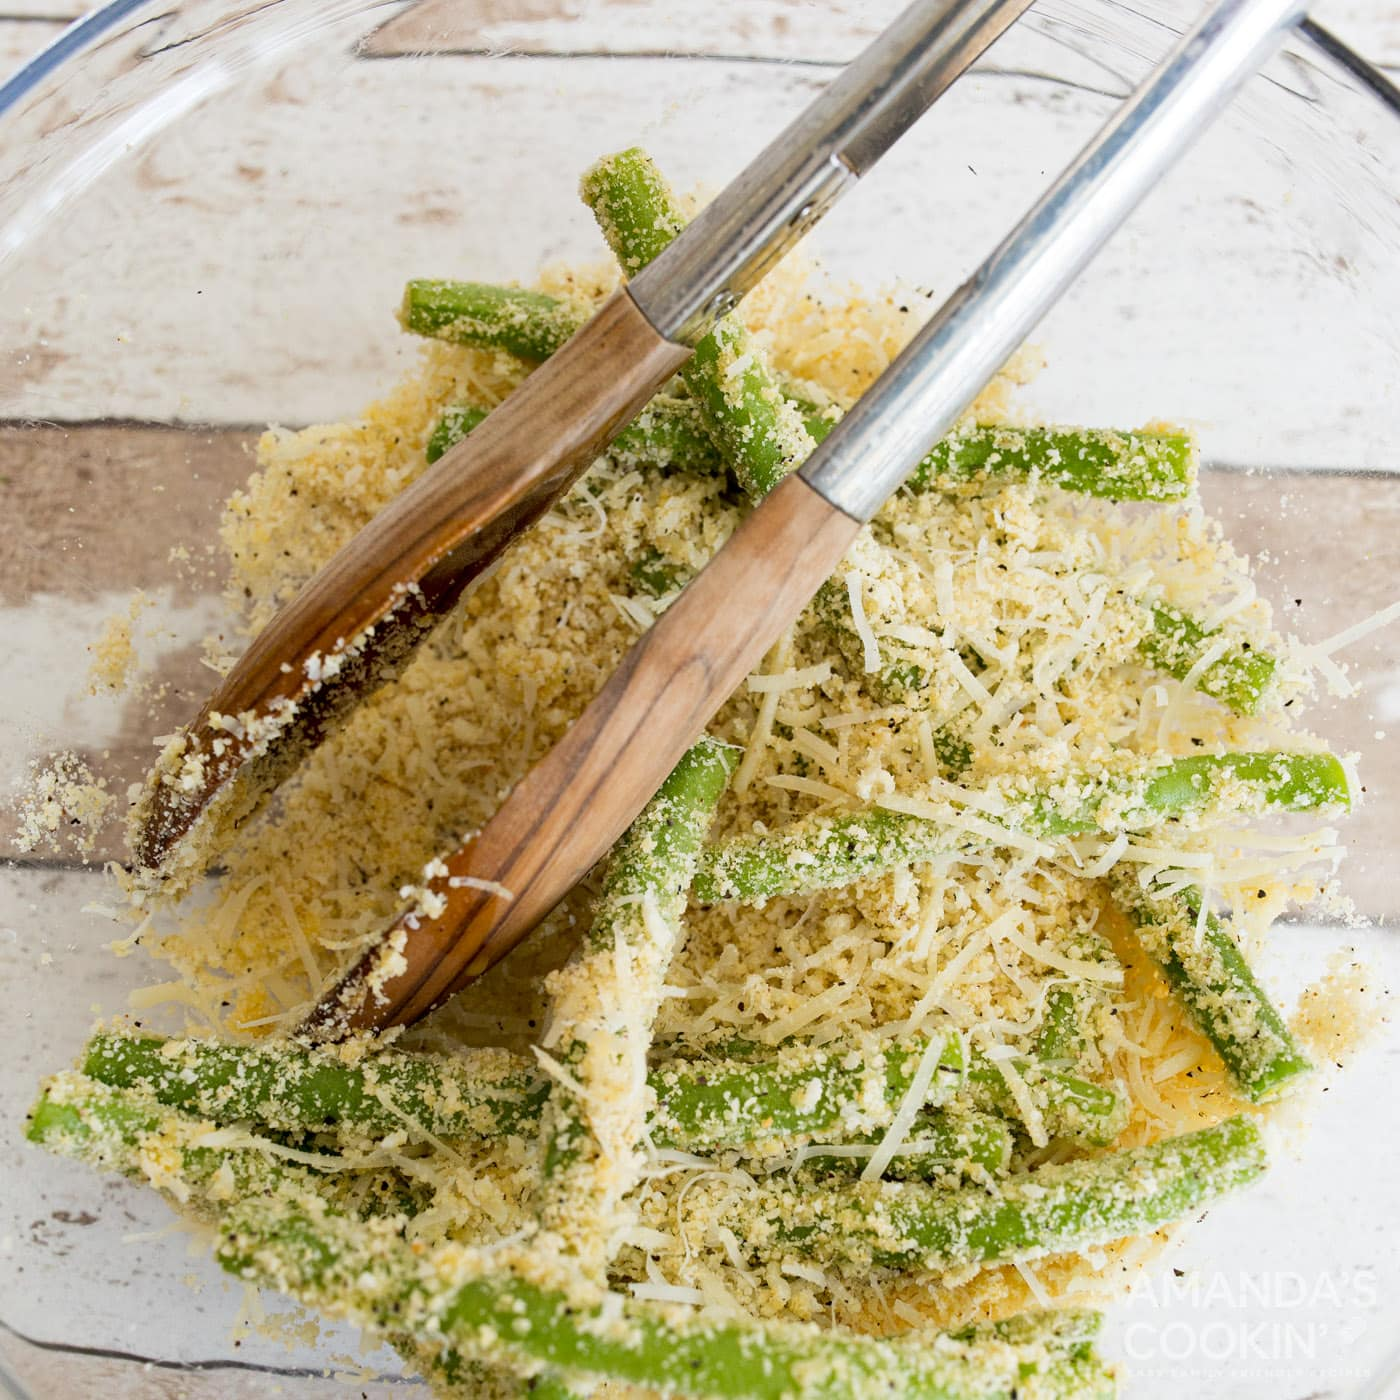 tossing green beans with almond flour, parmesan, egg, and seasonings